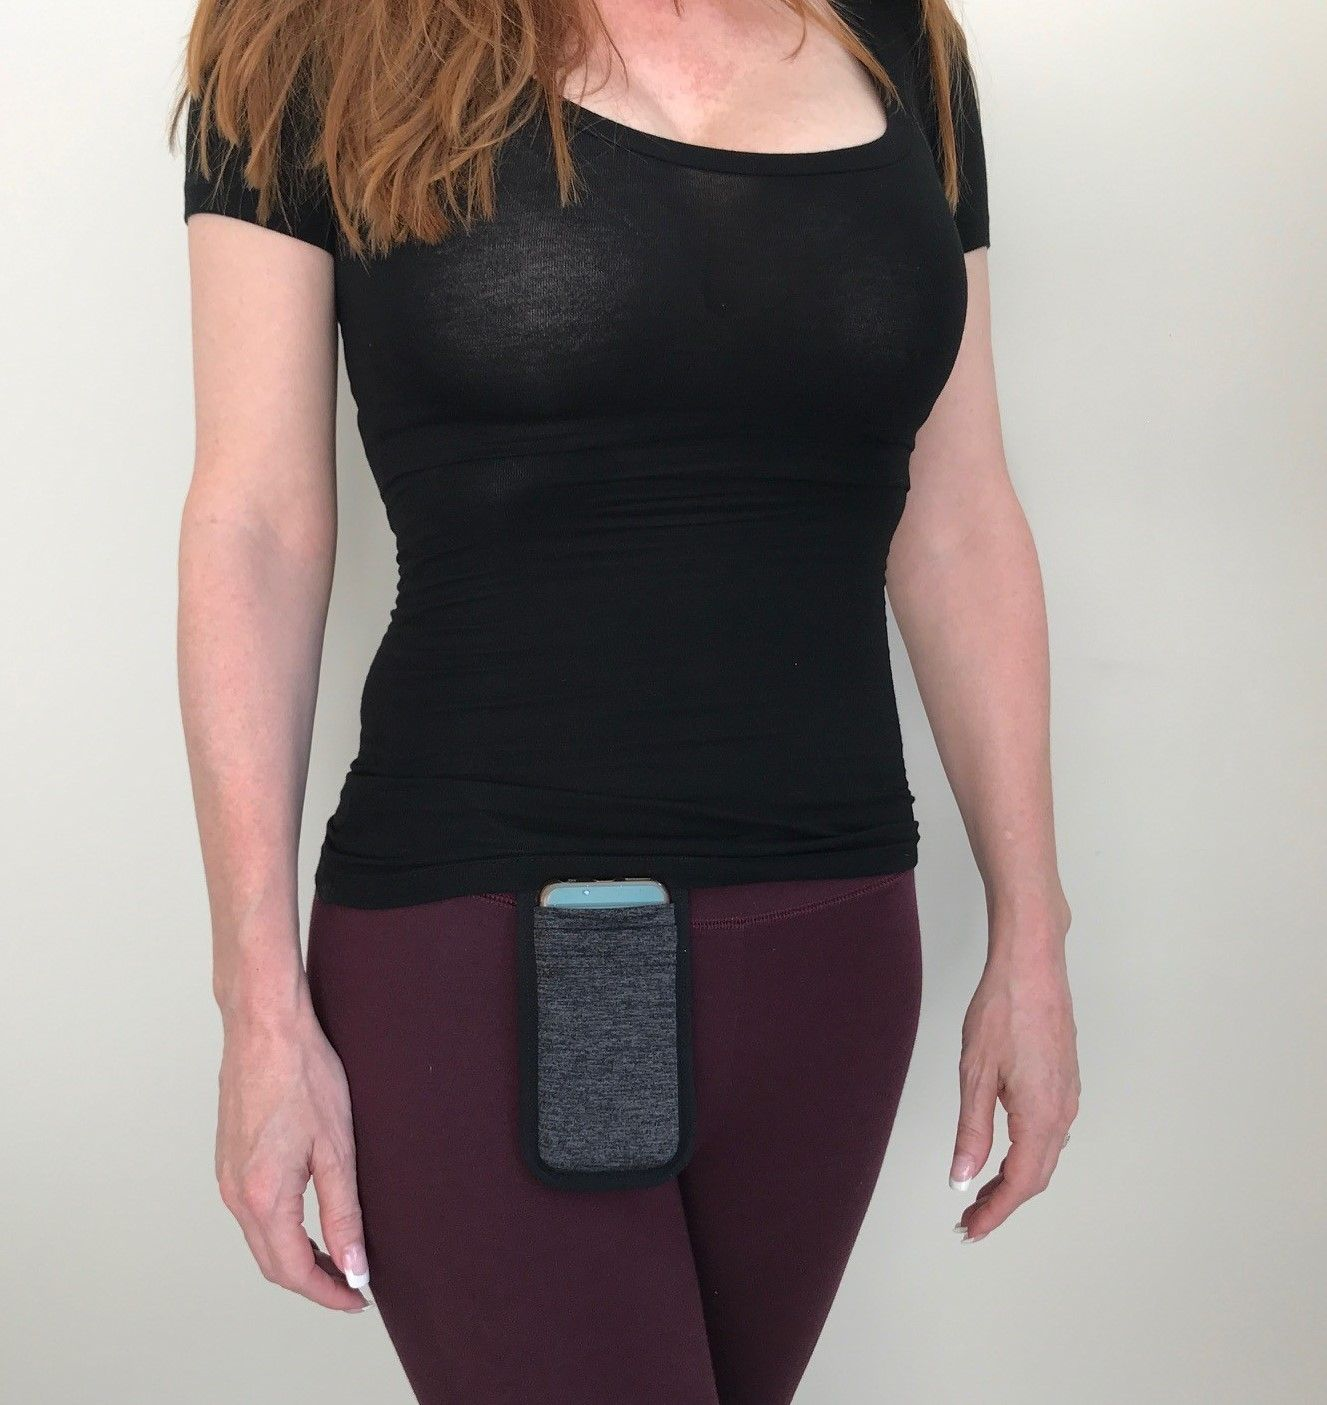 Instantly Add Pockets To Leggings Yoga Pants And Other Outfits To